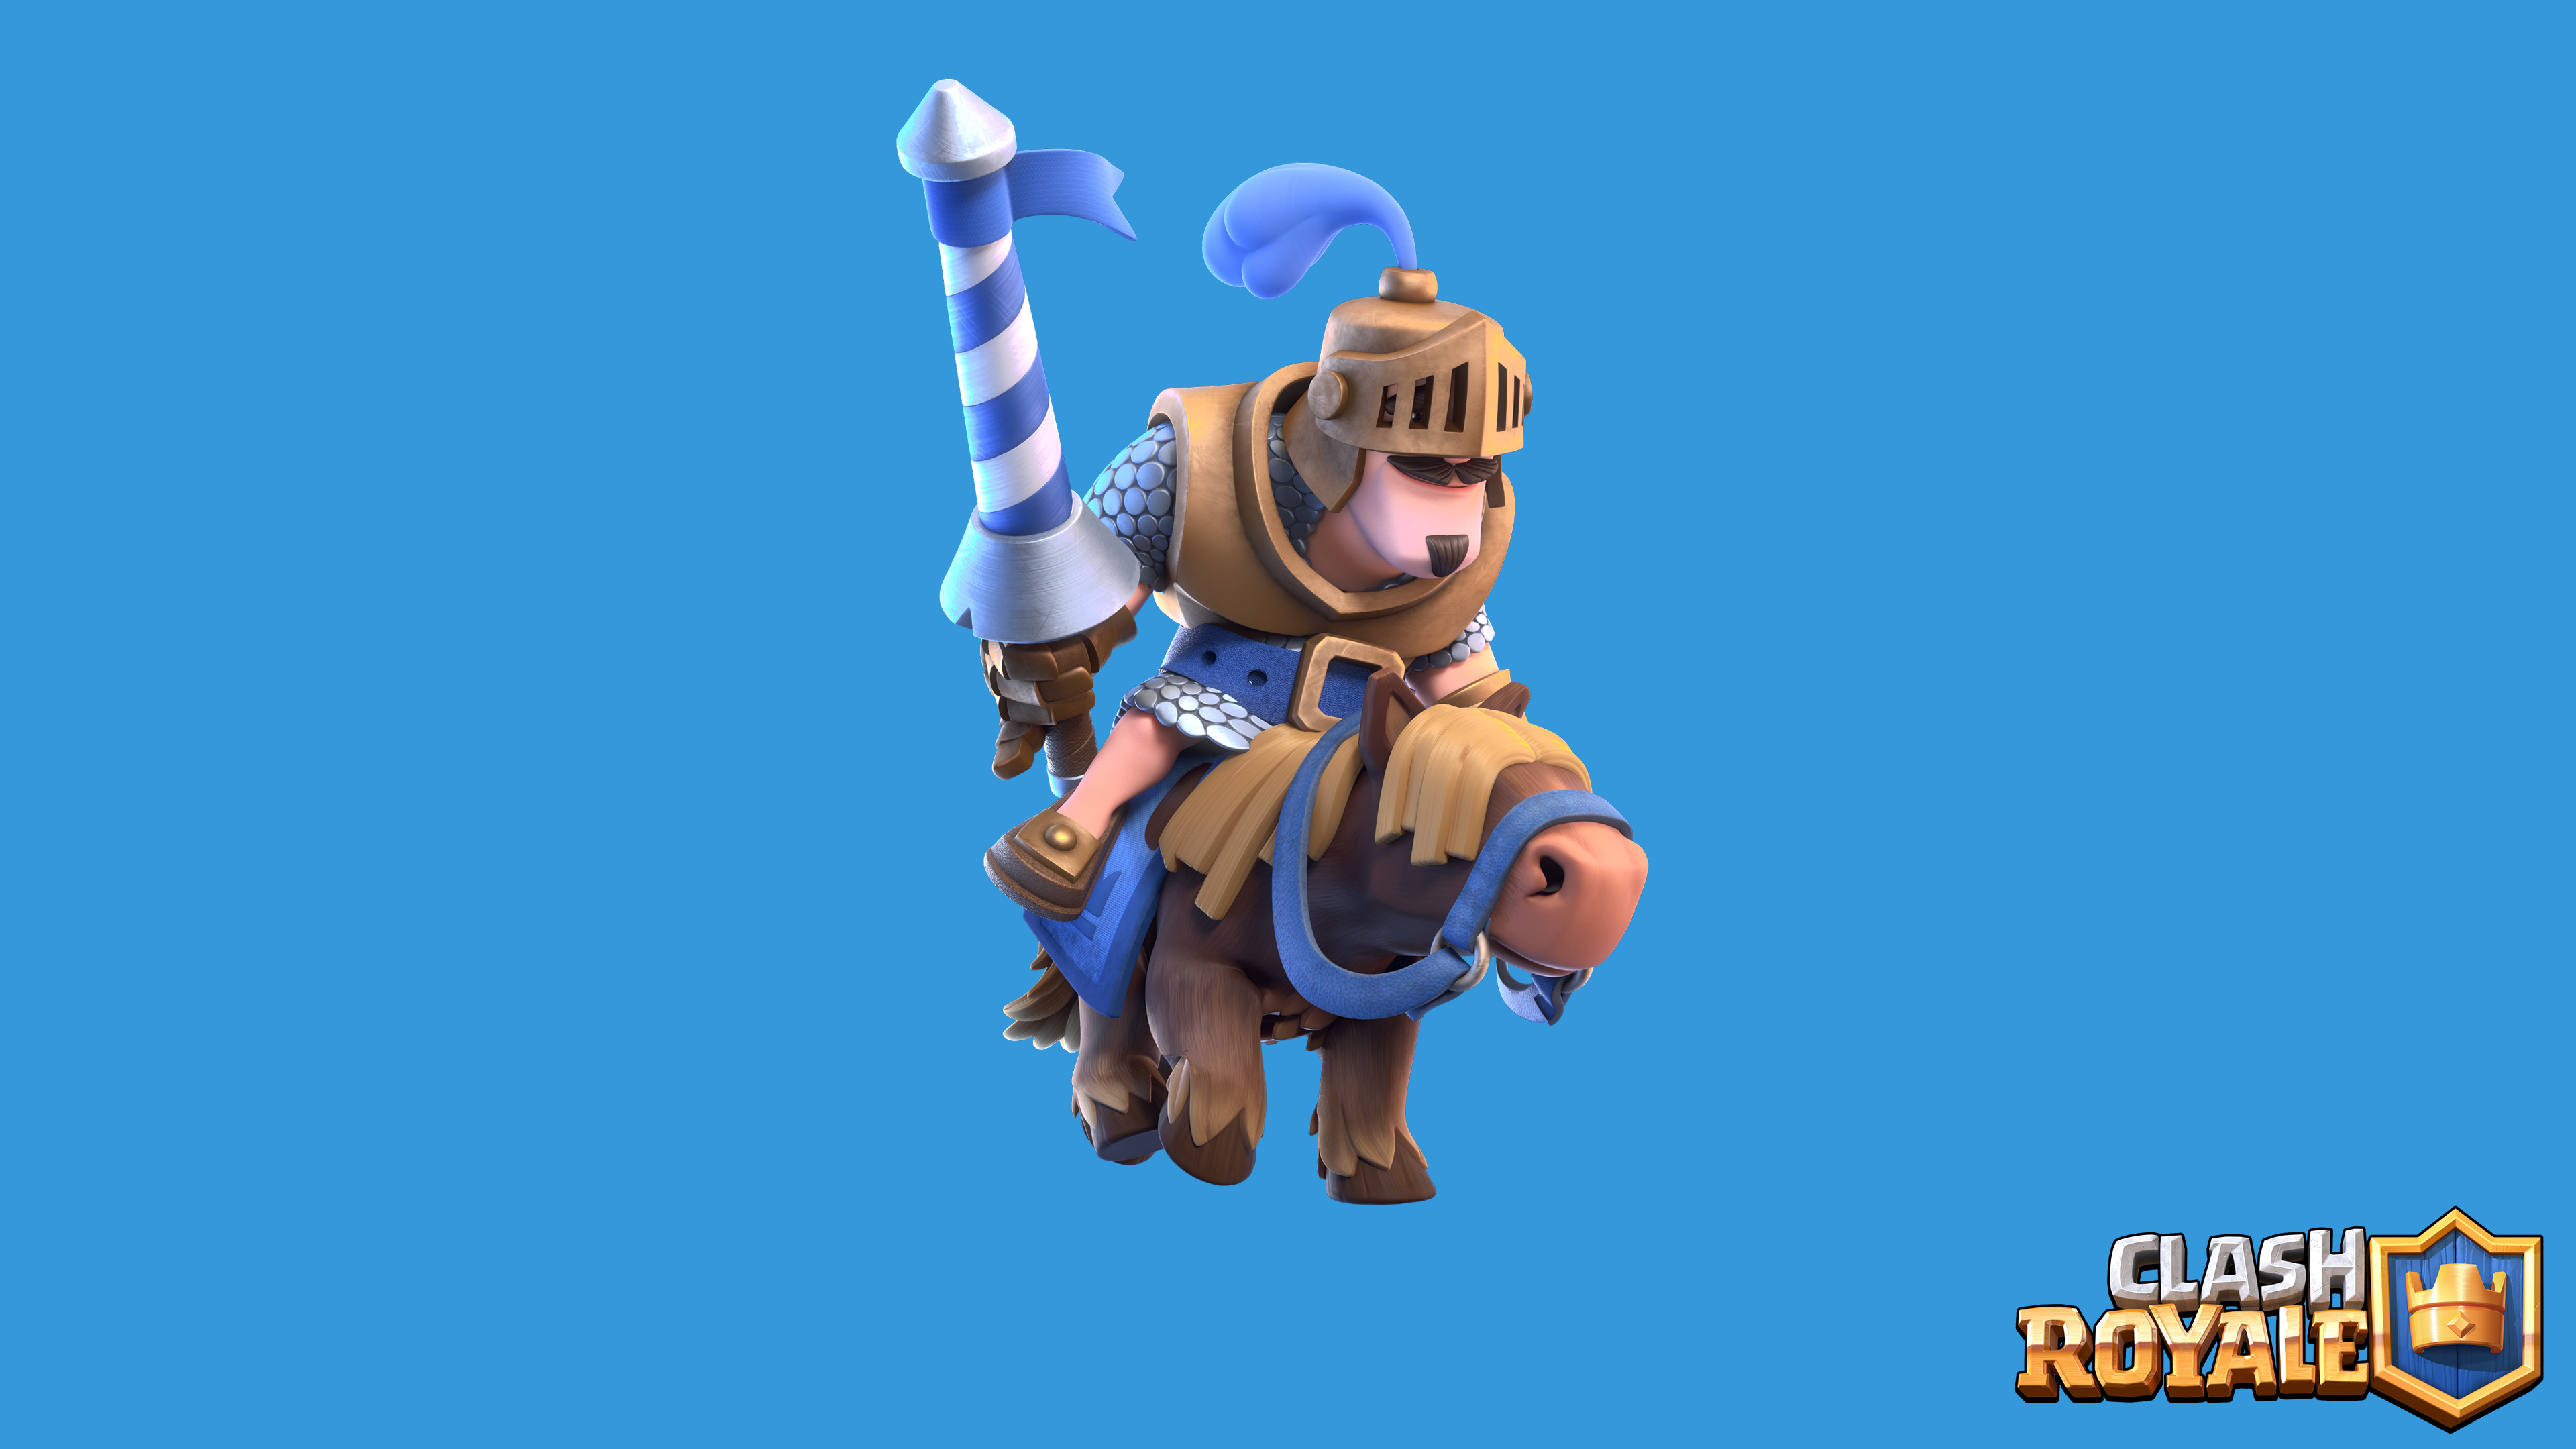 clash royale blue prince 3 1536008999 - Clash Royale Blue Prince 3 - supercell wallpapers, games wallpapers, clash royale wallpapers, 2016 games wallpapers